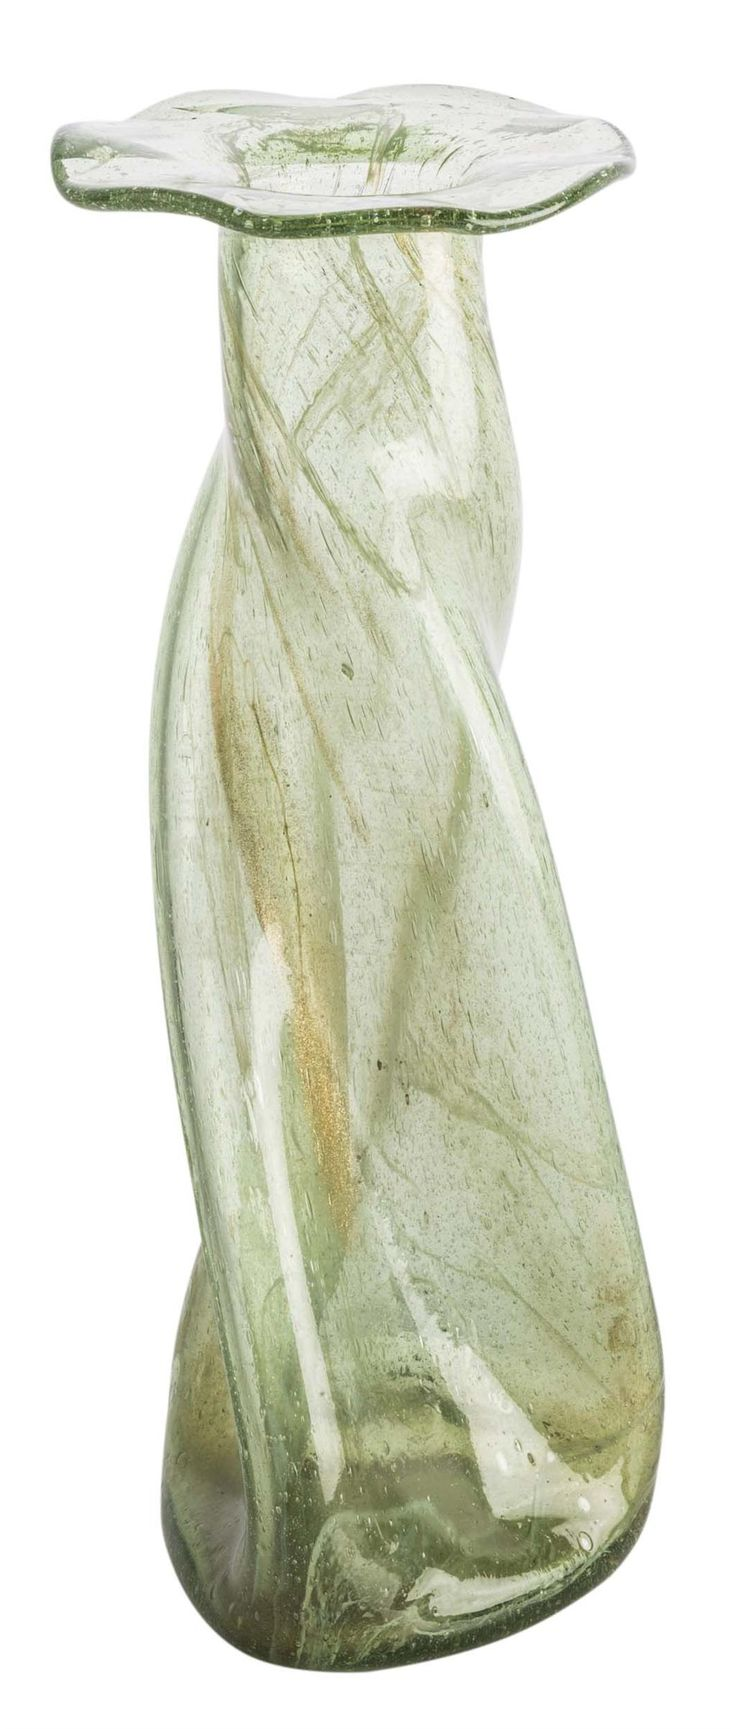 CHRISTOPHER DRESSER (1834-1904) FOR JAMES COUPER & SON, GLASGOW  'CLUTHA' GLASS VASE, CIRCA 1880  of tapering twisted form with broad rim, the green glass body with milky inclusions  28.5cm high  Estimate £ 800-1,200 Sold for £1,000 (buyer's premium included)